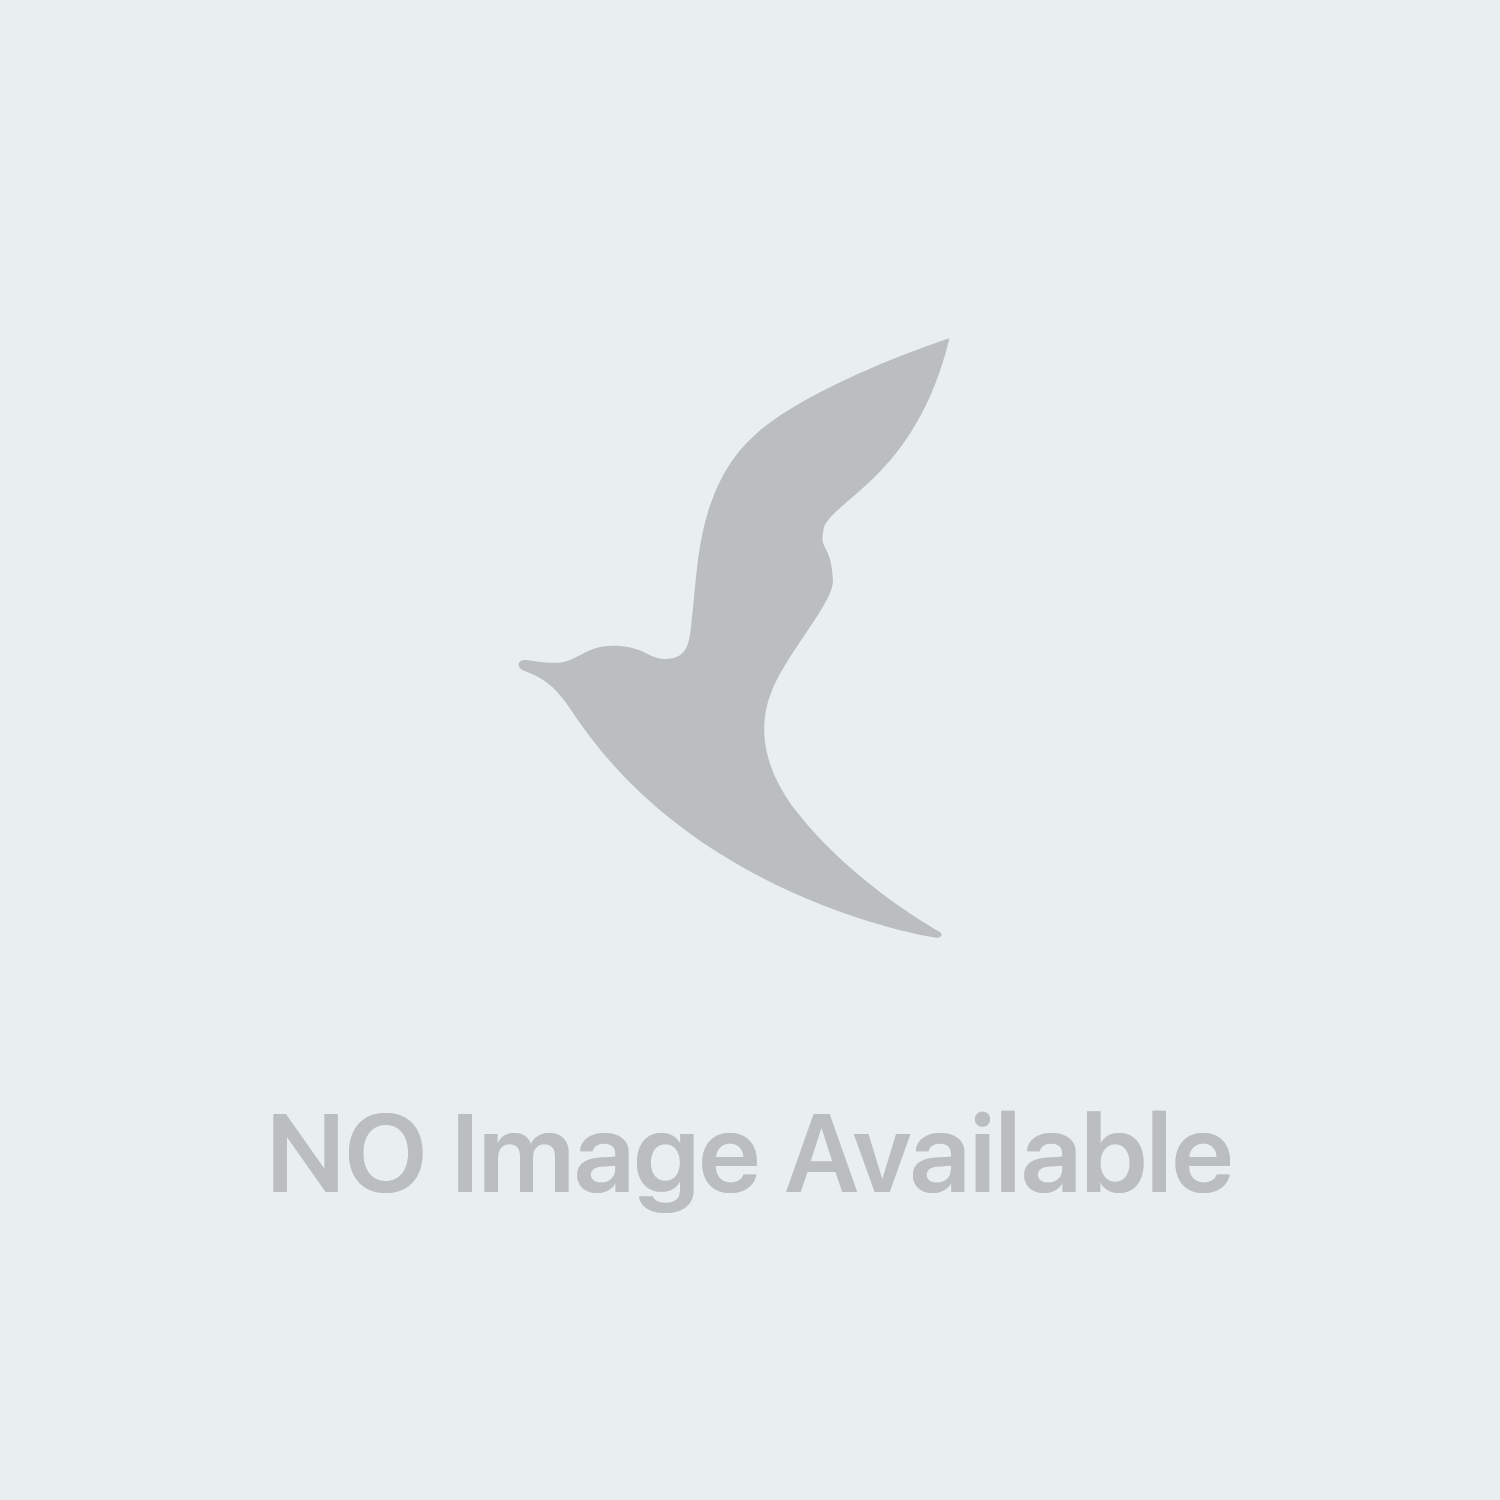 Optrex Actidrops Collirio 2 in 1 Antiprurito Occhi 10 Ml